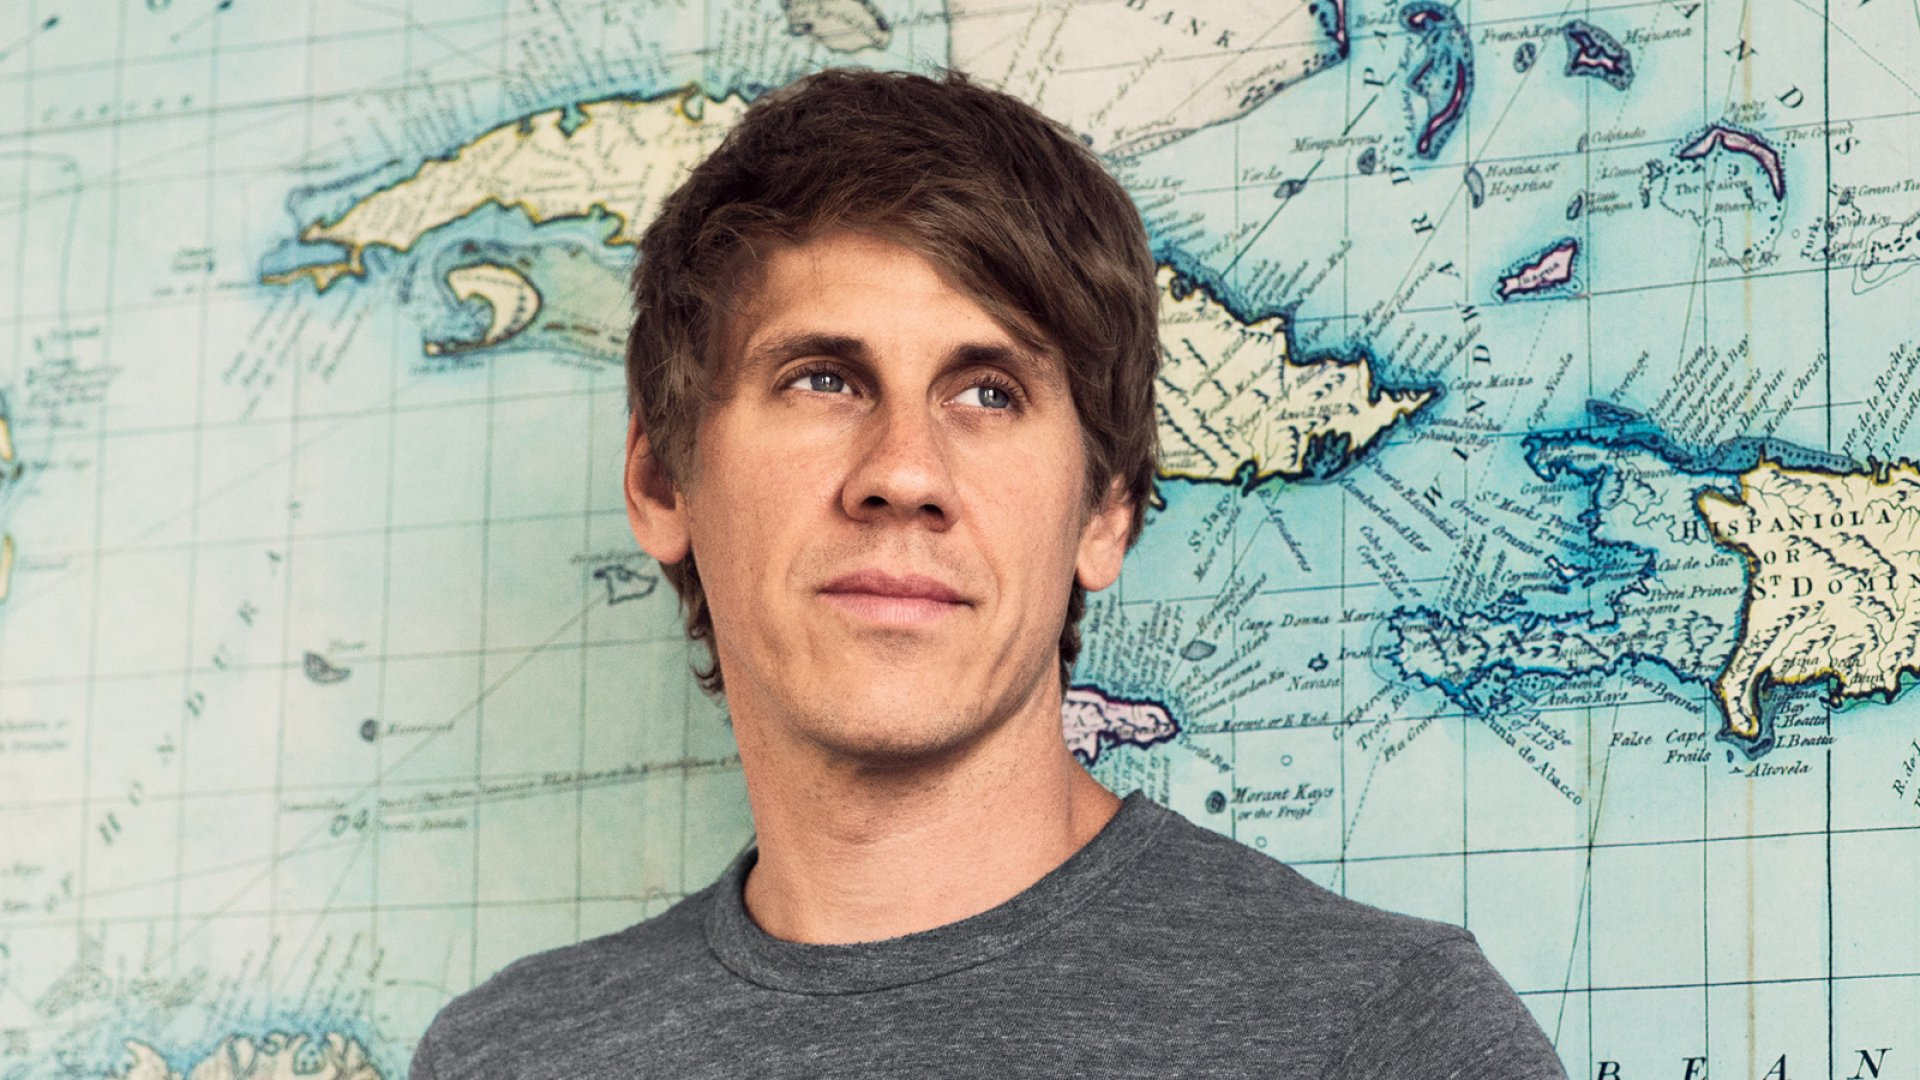 Foursquare's Dennis Crowley: Being an Entrepreneur 'Can Drive You Crazy'